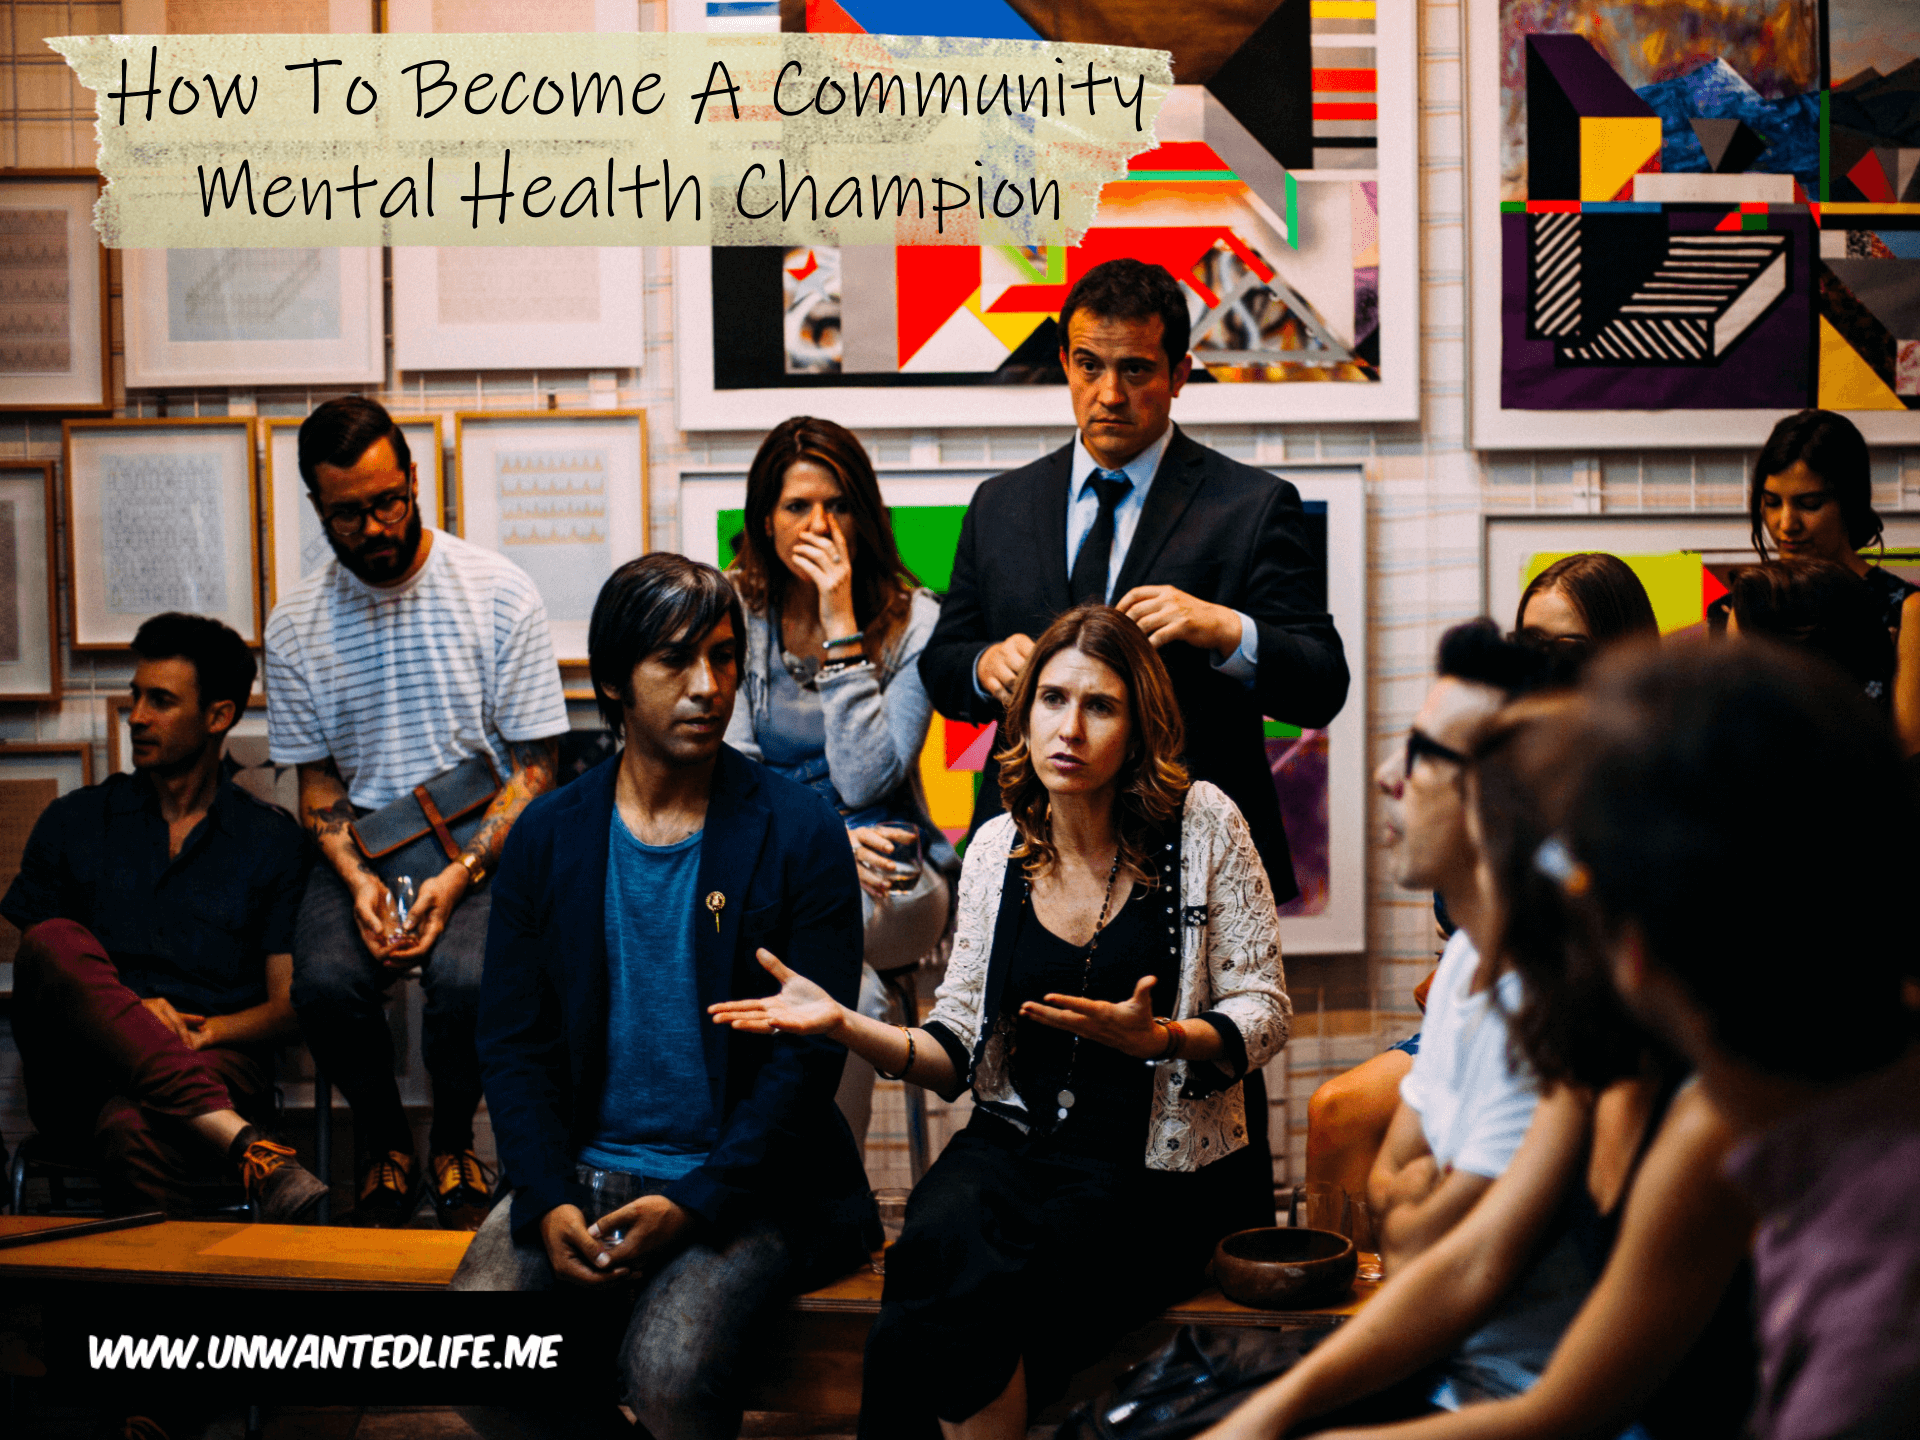 How To Become A Community Mental Health Champion | Wellbeing and Wellness | Unwanted Life